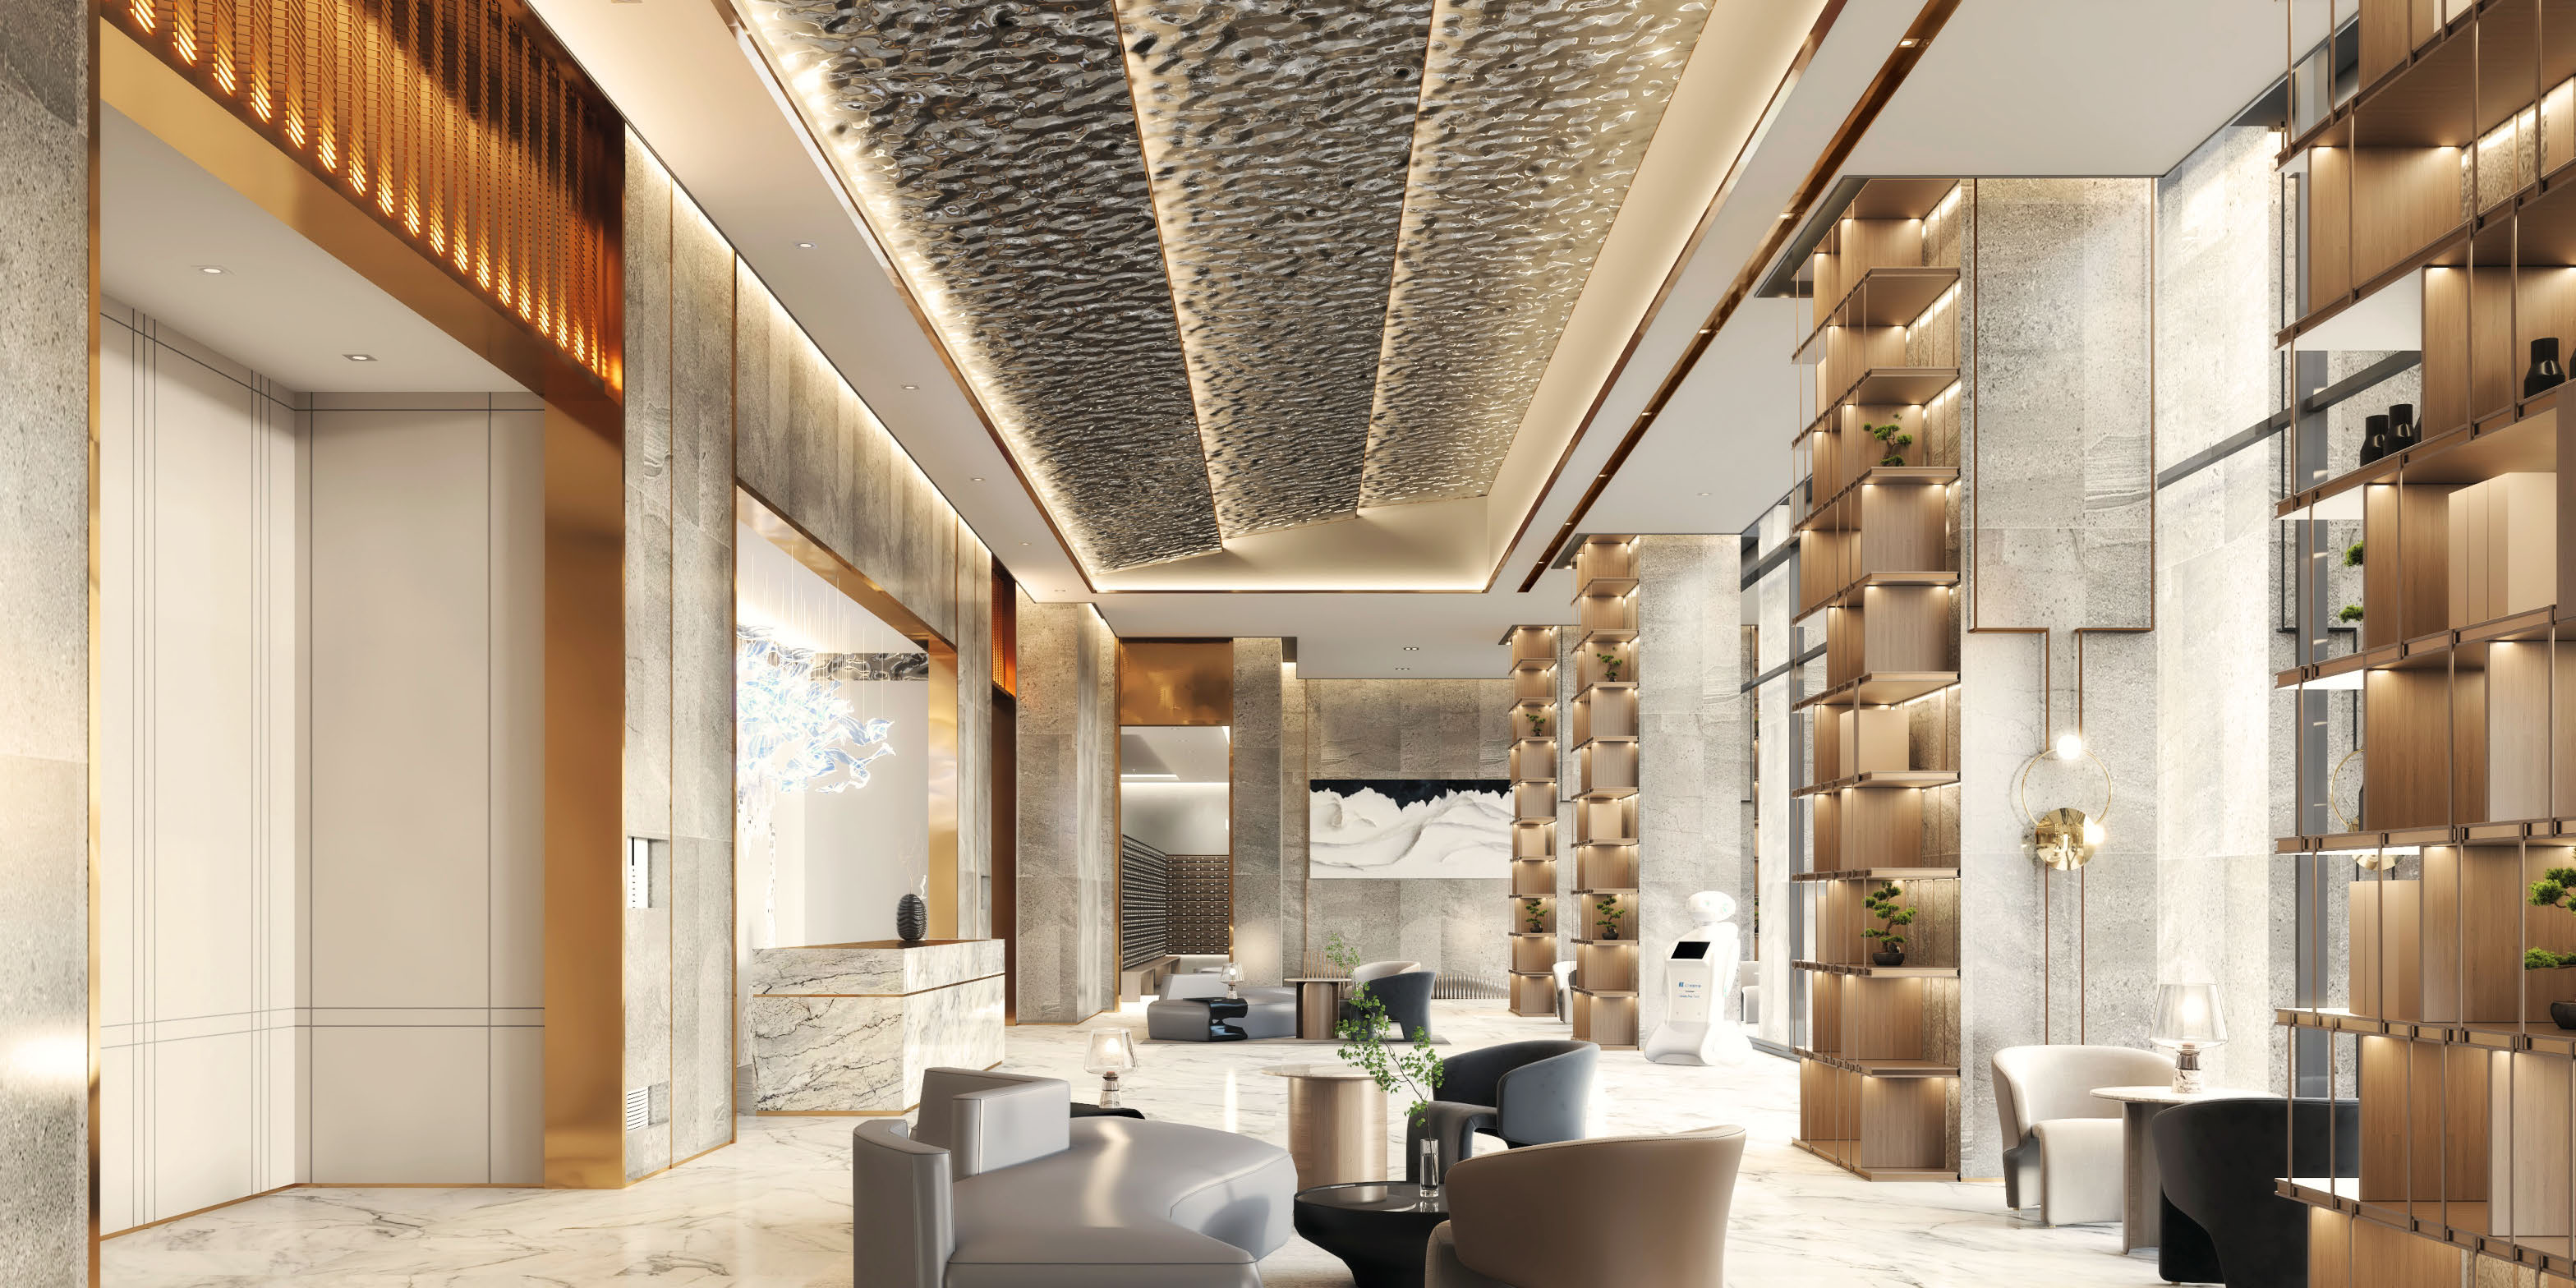 The Grand Lobby, inspired by the bay and the sunset, provides its residents a hotel-like welcome